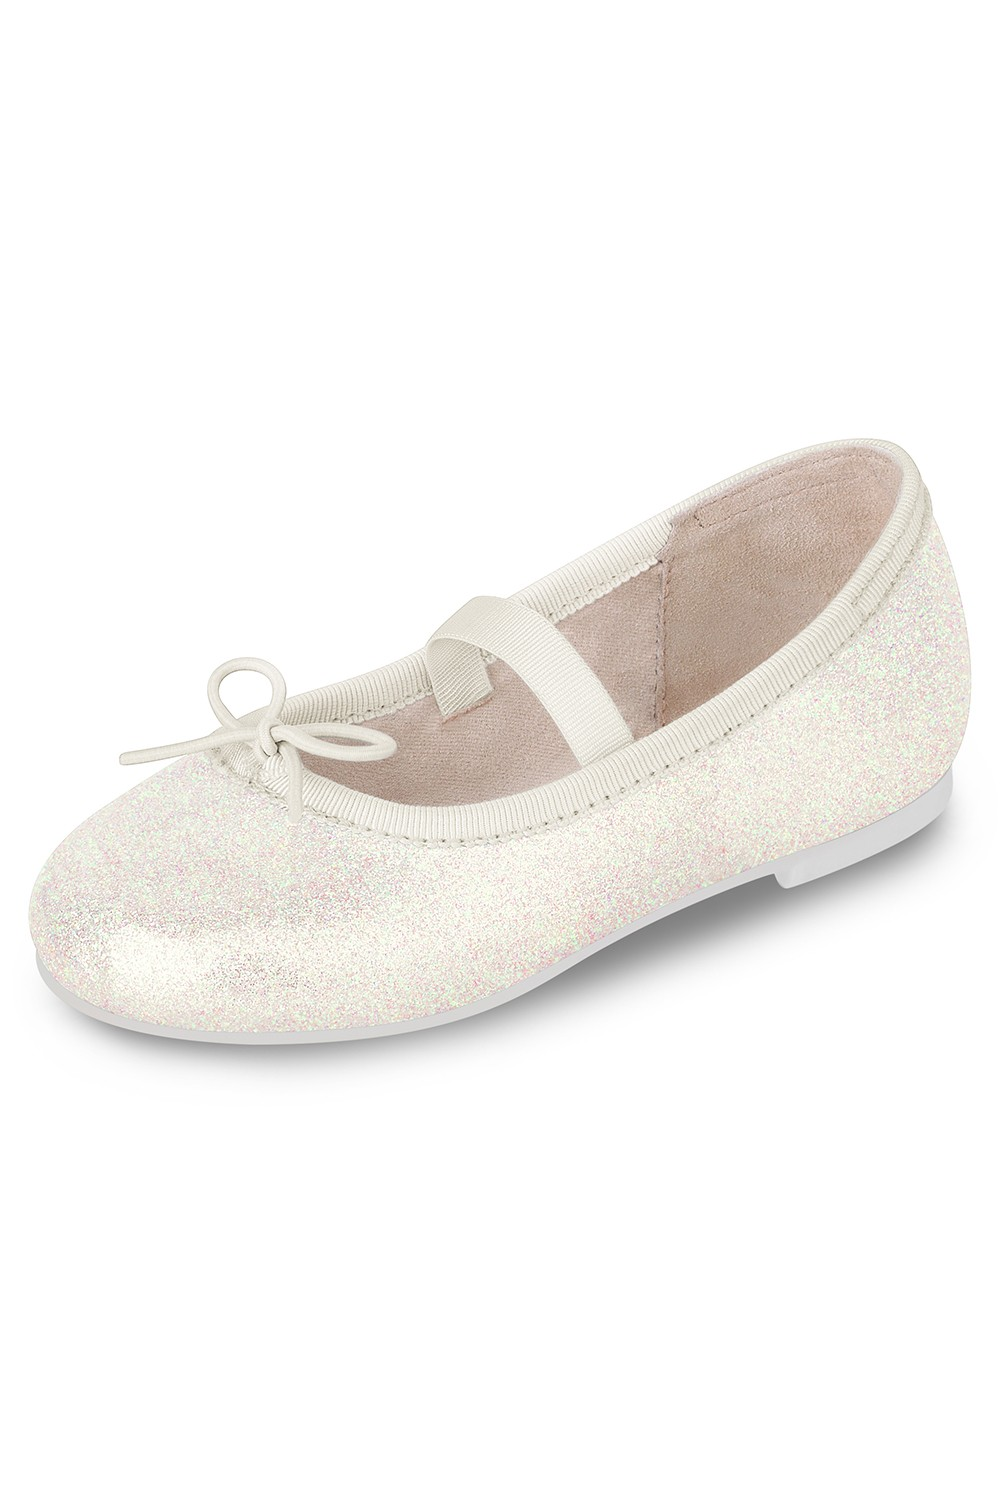 Beatrix Toddler Ballet Flat Toddlers Fashion Shoes